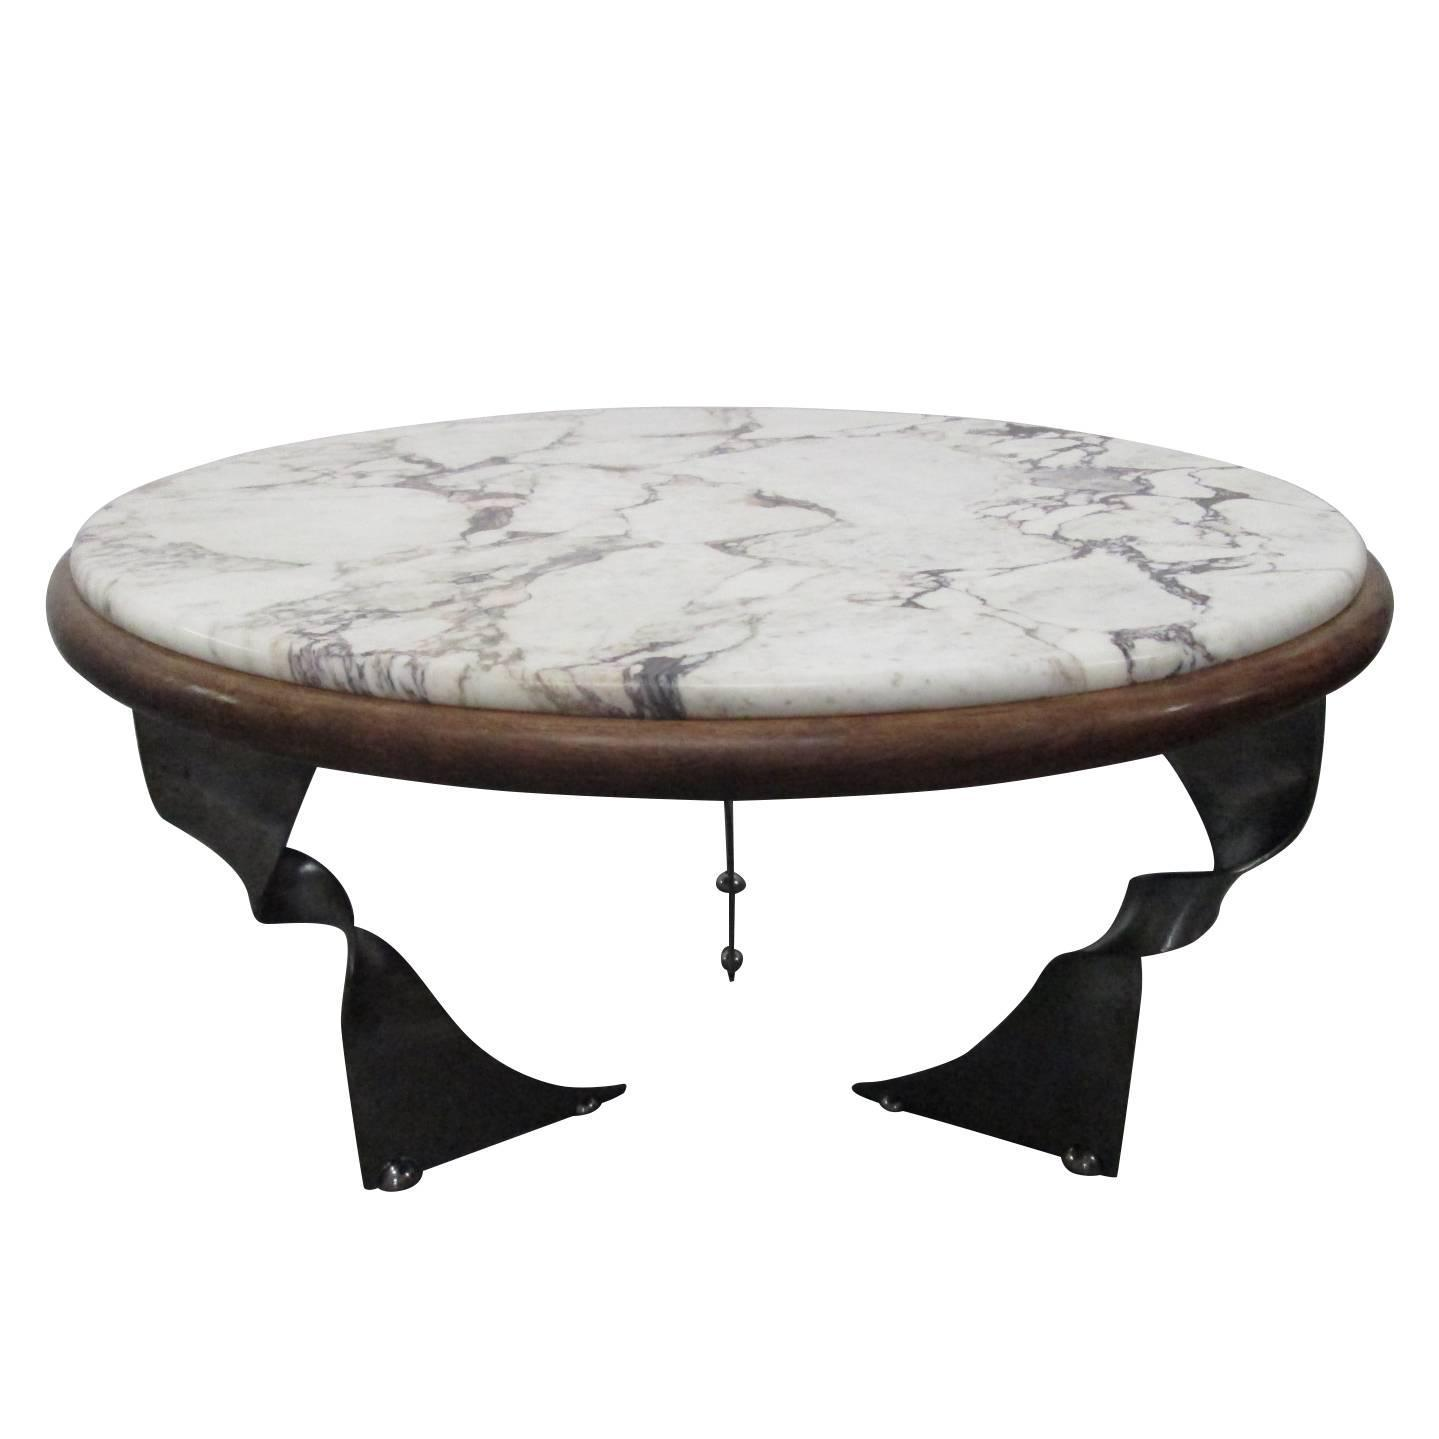 Unique steel base and marble top coffee table for sale at for Metal coffee table with stone top